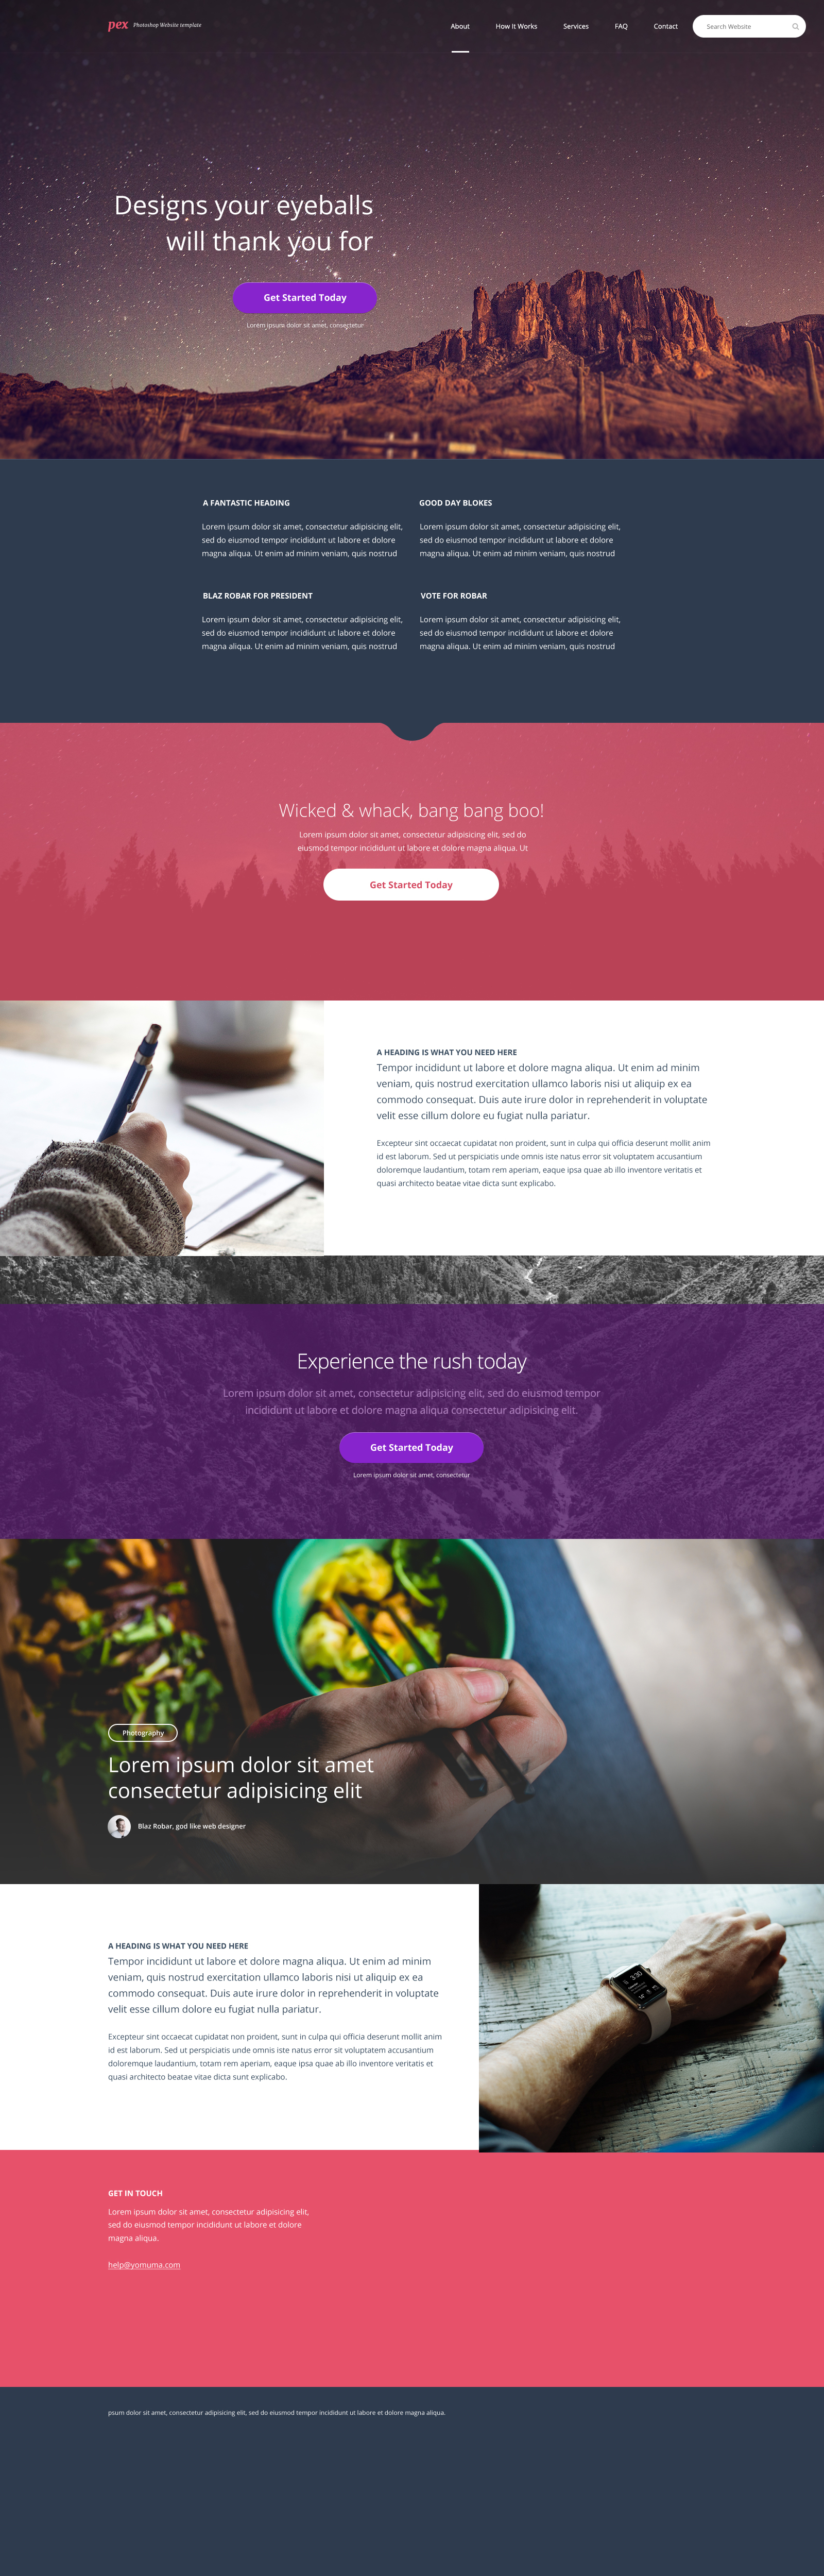 Pex Website Home Page Design FREE Photoshop PSD